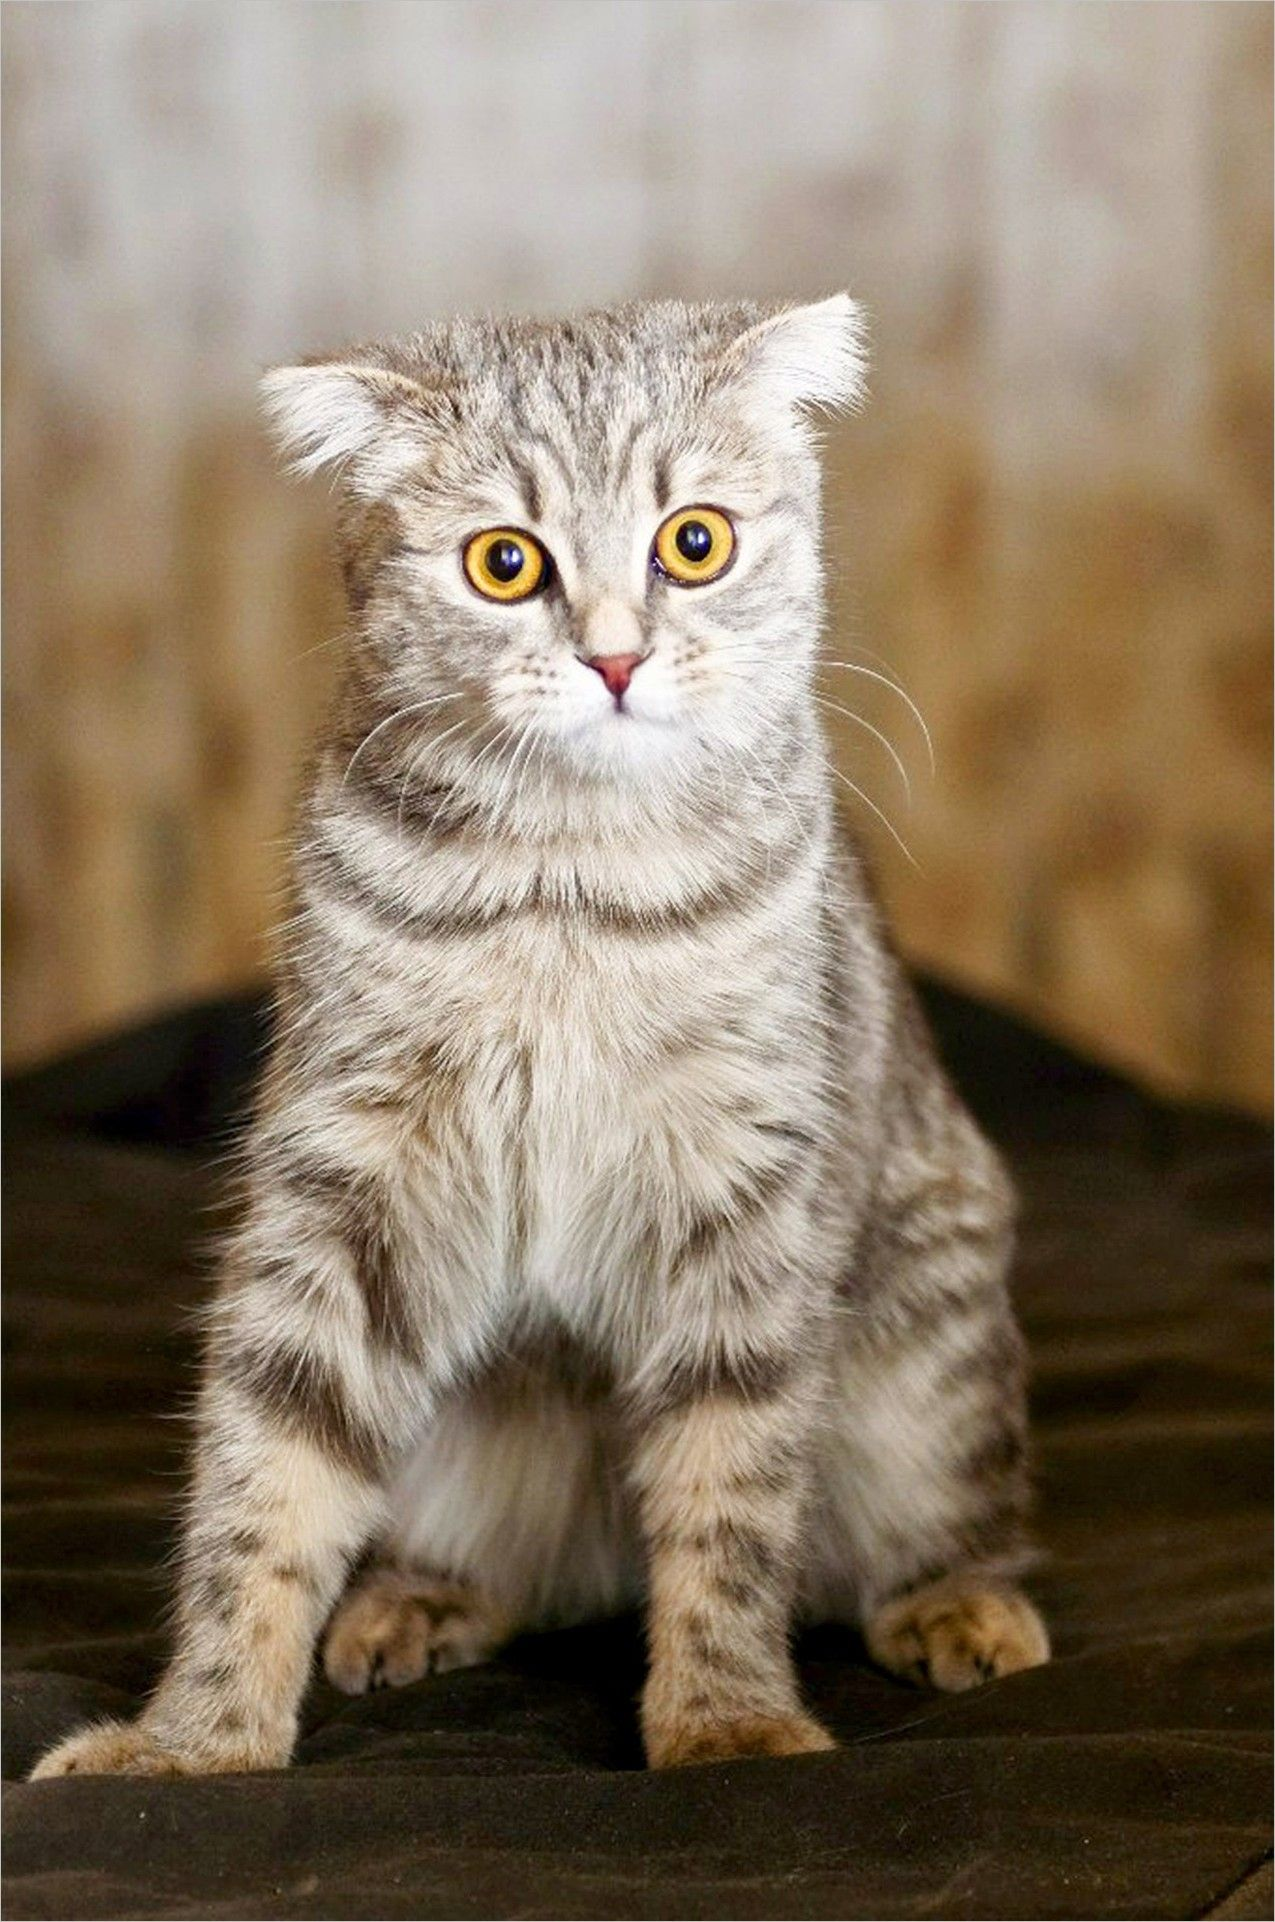 Cat Wallpaper Img Pictures Cat Eyes Scottish Fold Cat Yellow Eyes Striped